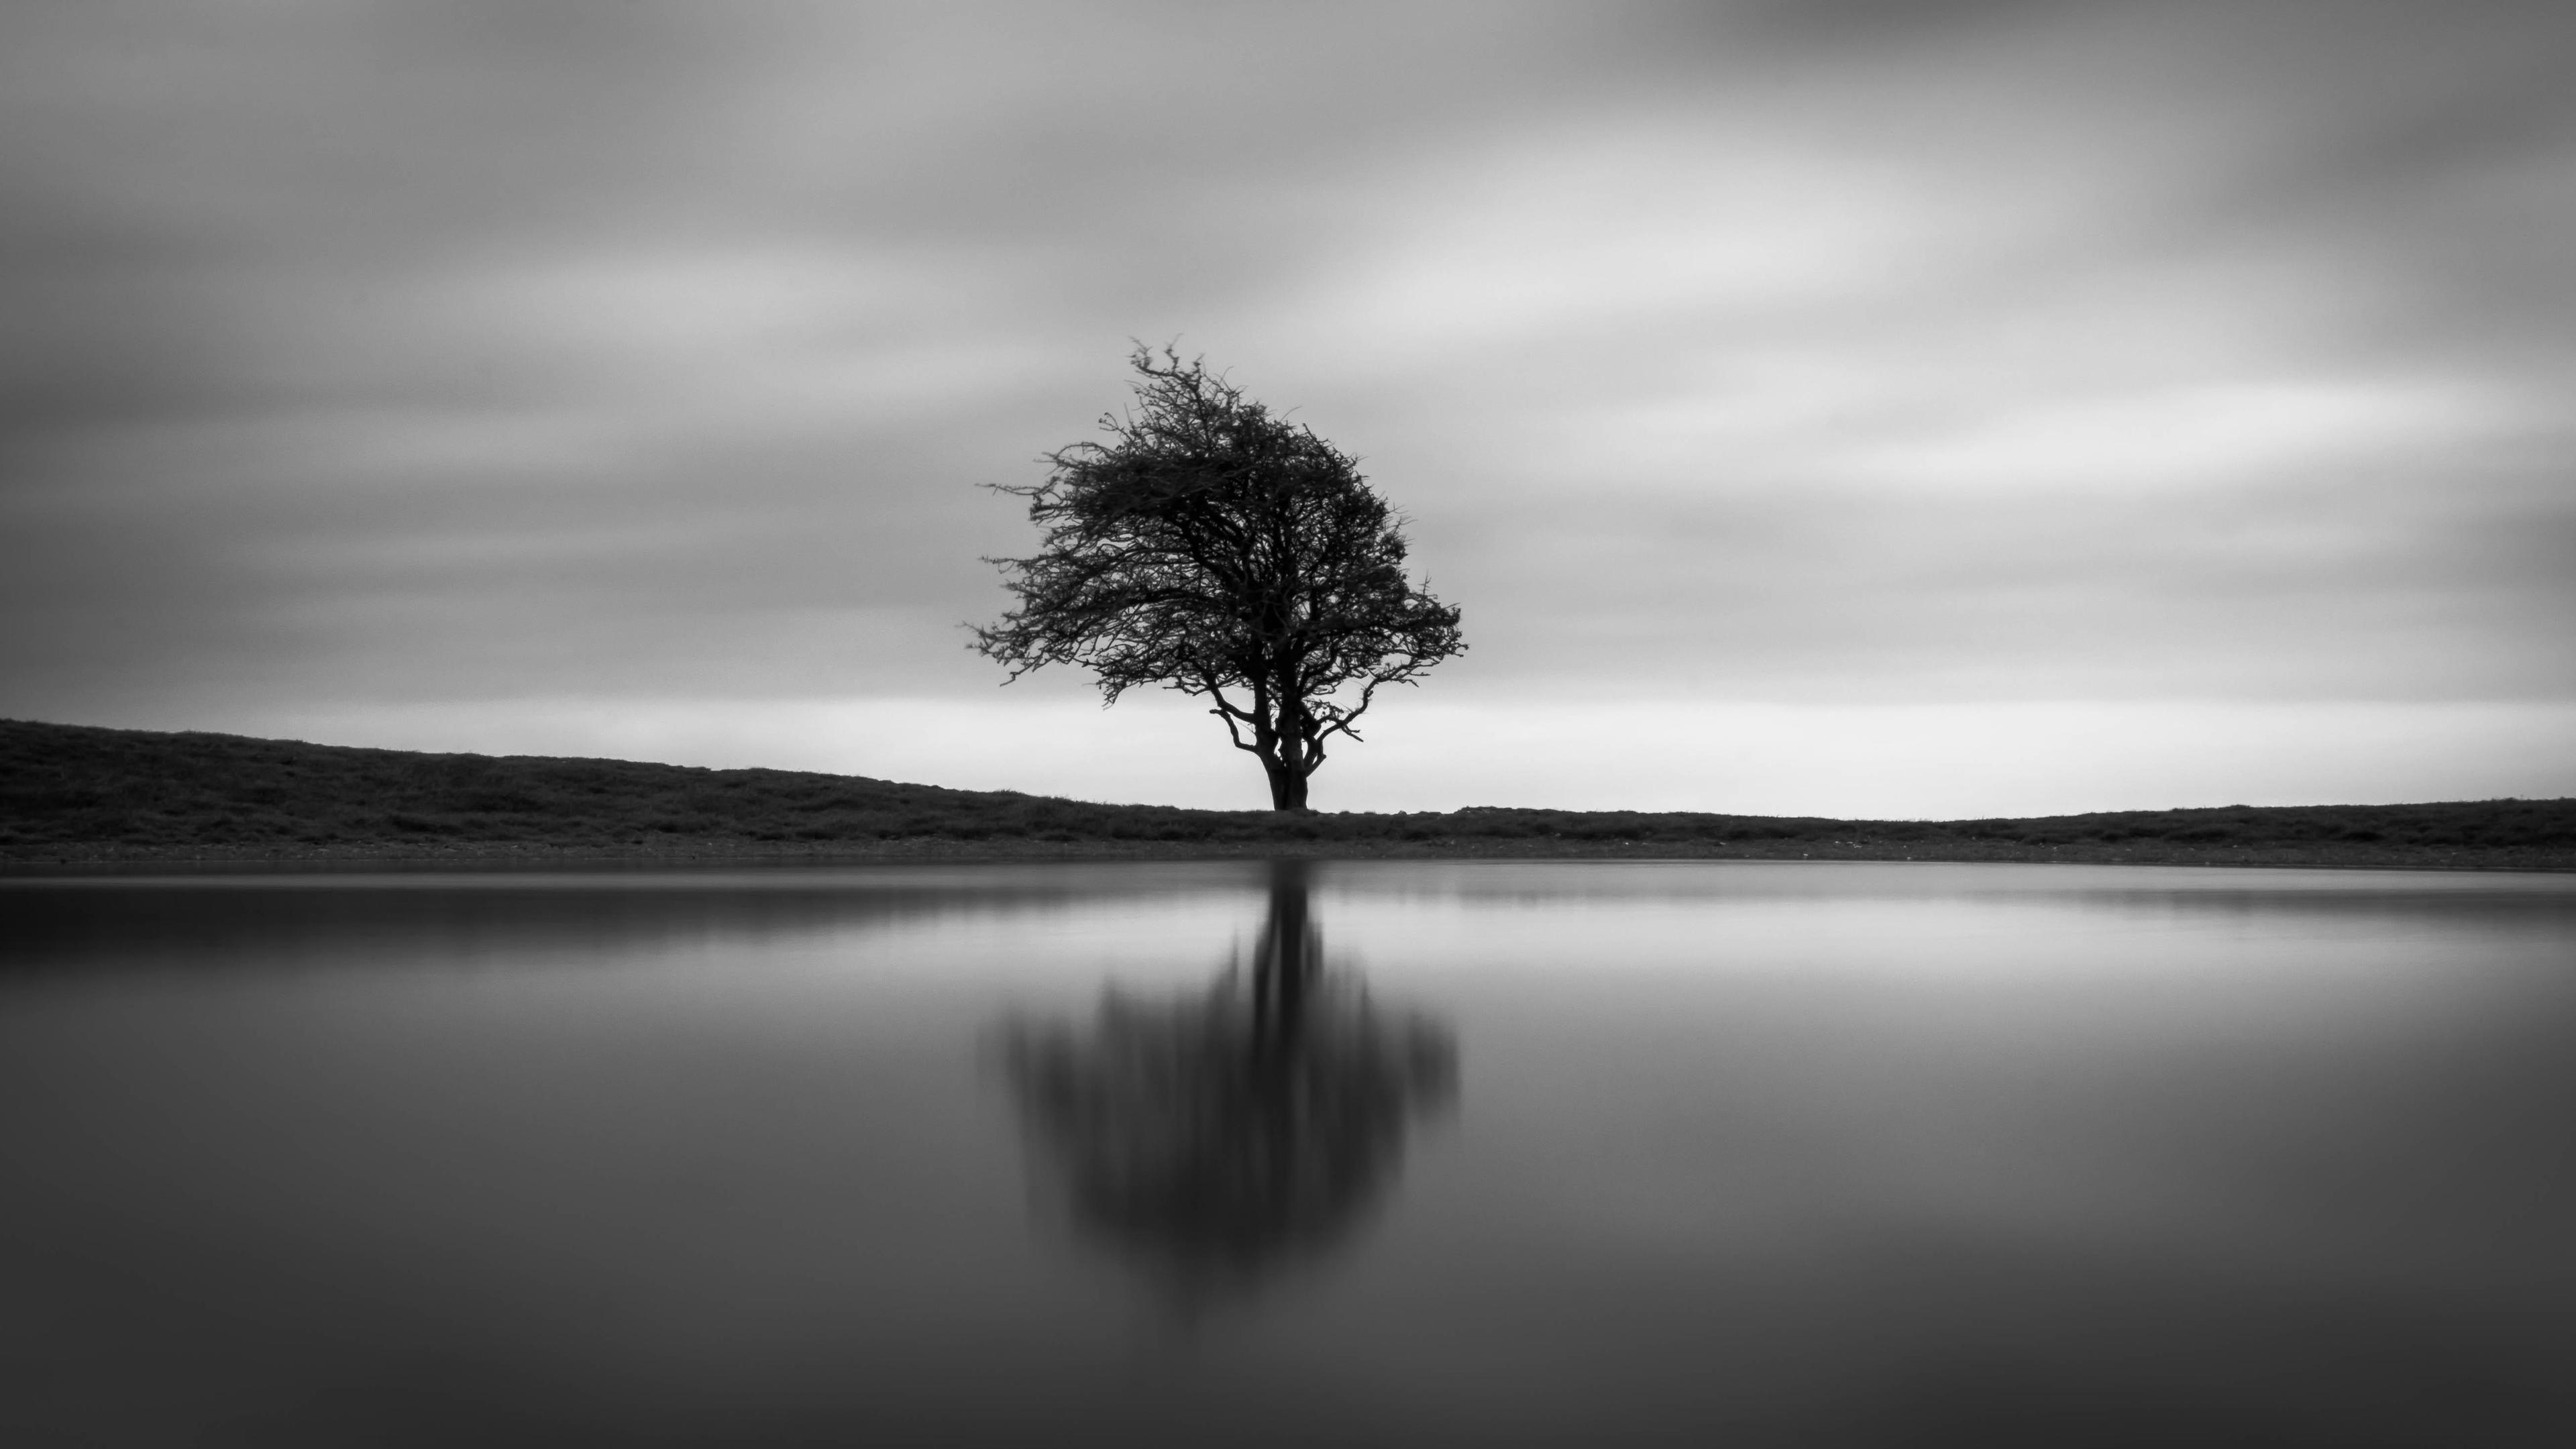 solo tree 1551644417 - Solo Tree - tree wallpapers, nature wallpapers, monochrome wallpapers, black and white wallpapers, 4k-wallpapers